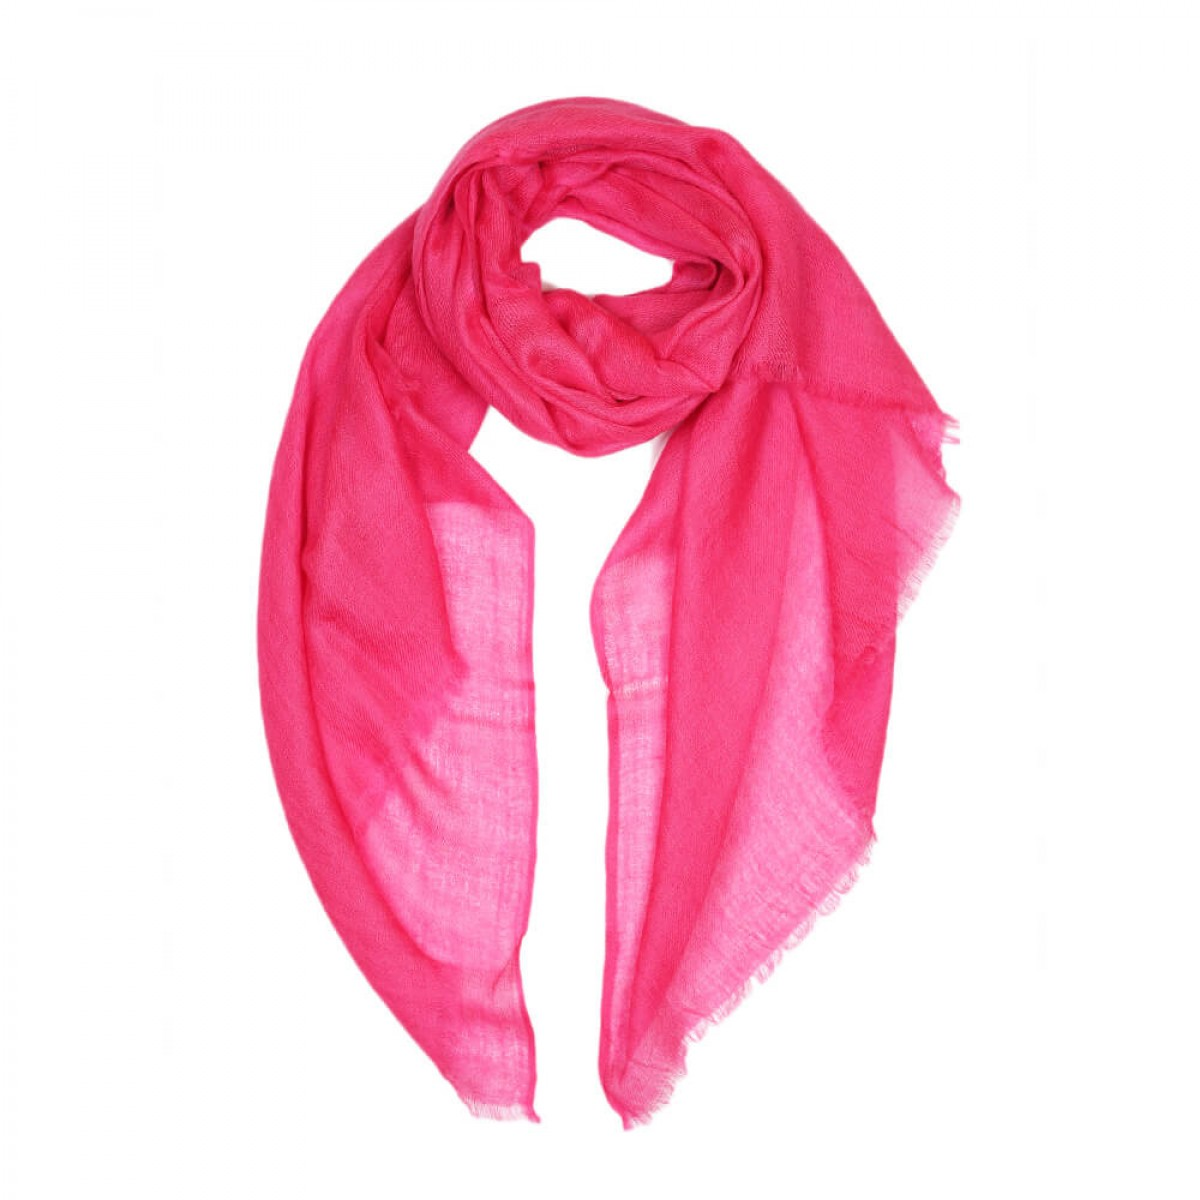 Sheer Pashmina Scarf - Hot pink